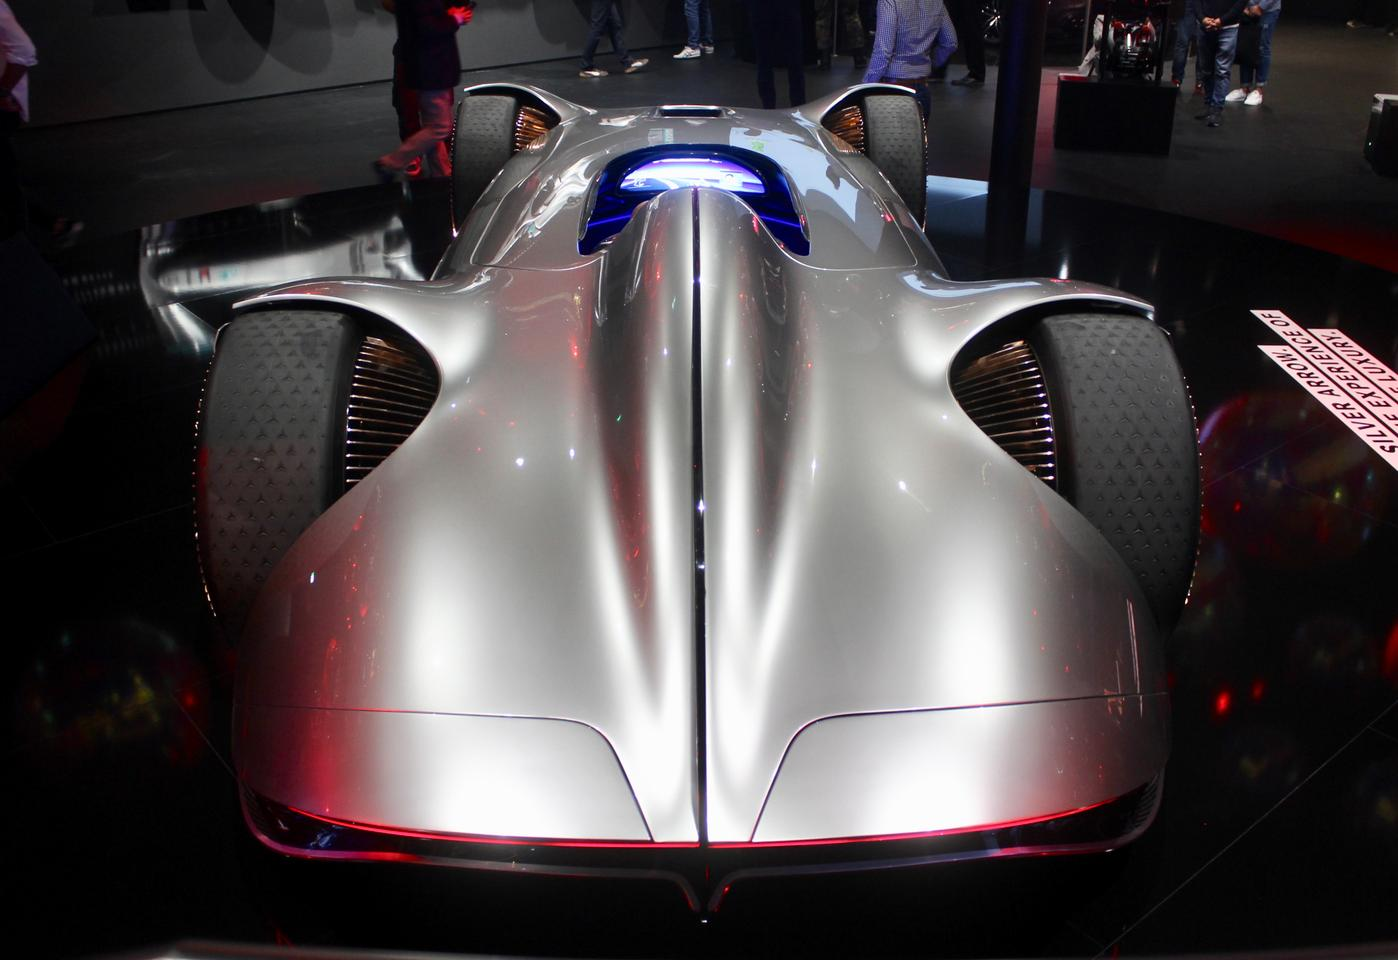 The 750-hp Mercedes Vision EQ Silver Arrow is another of the exorbitantly powerful electric cars of Frankfurt